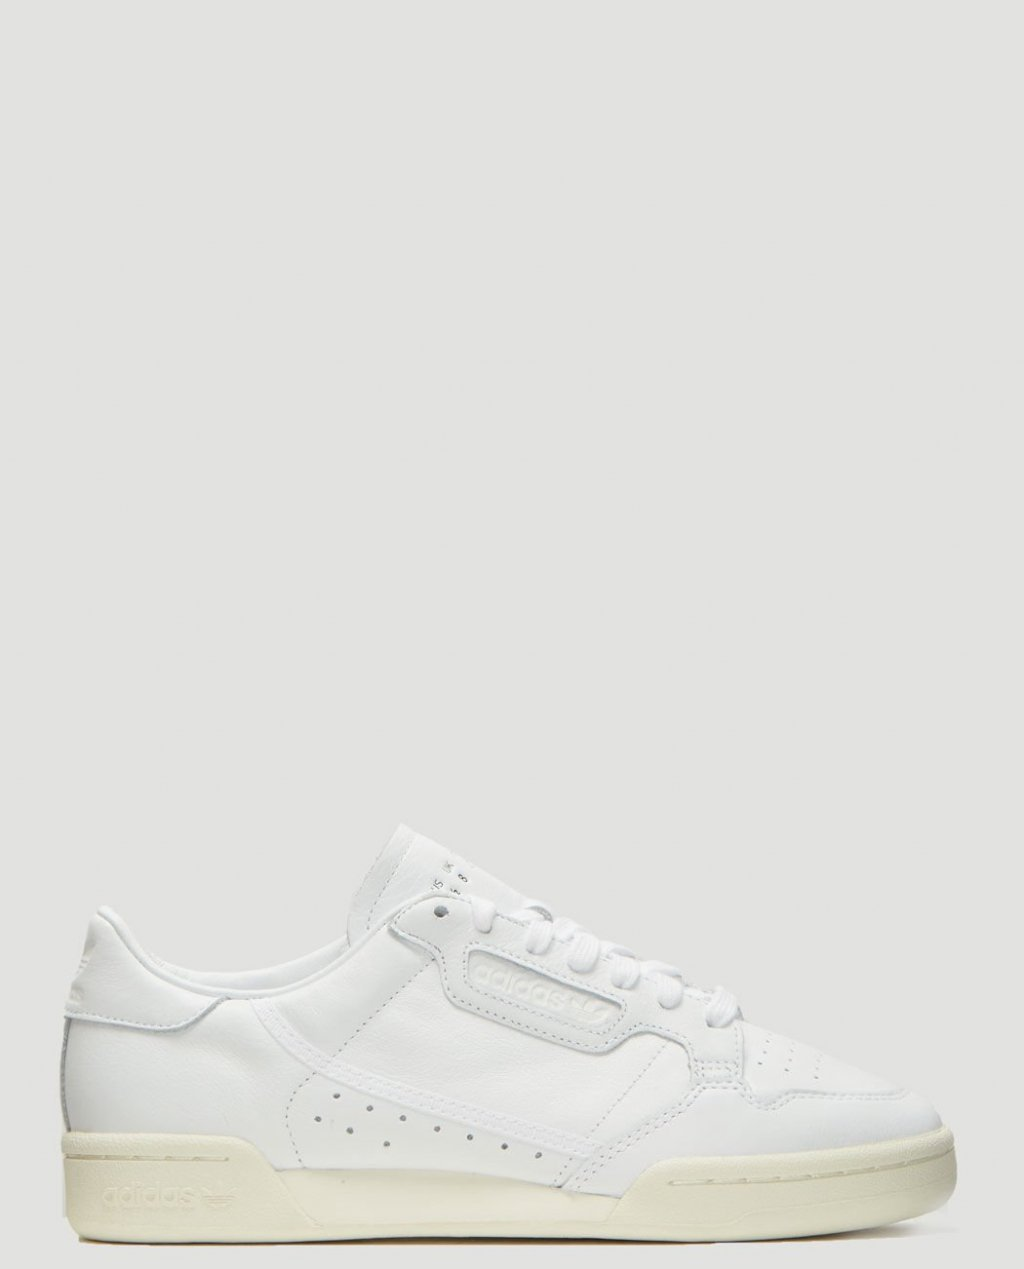 adidas Continental 80 Sneakers in White